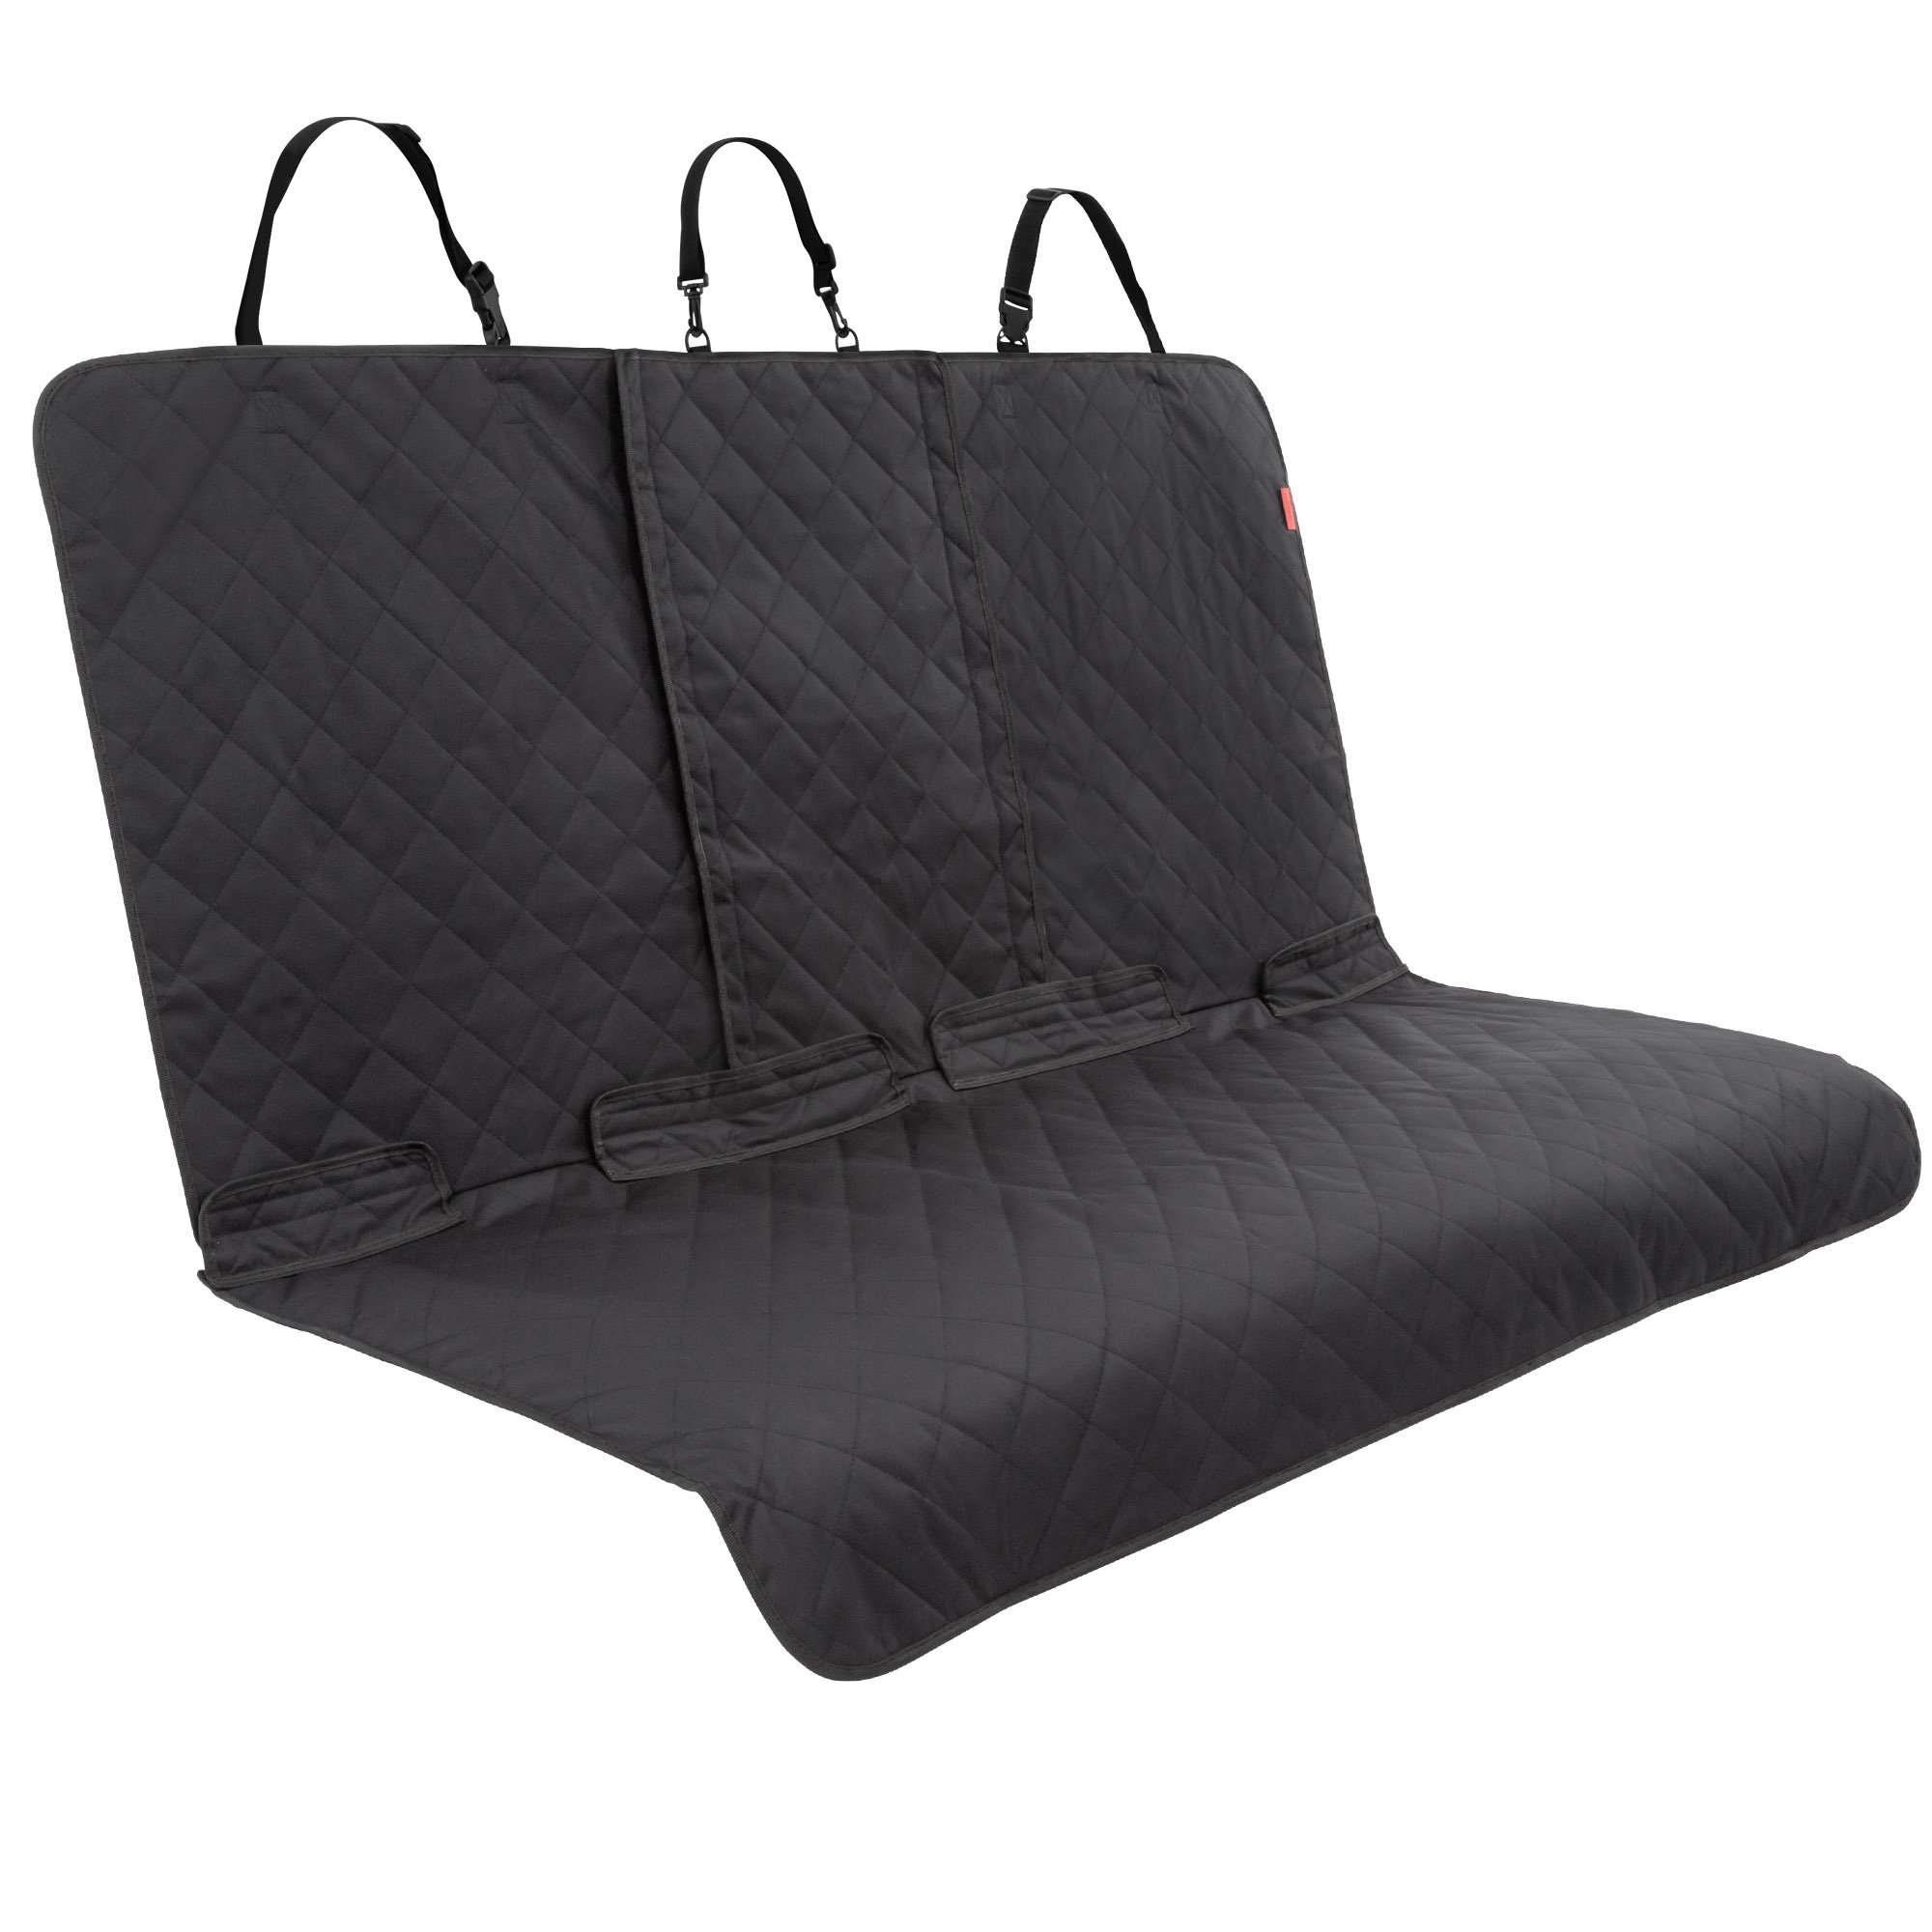 Factory Effex 07-24256 Black All-Grip Seat Cover